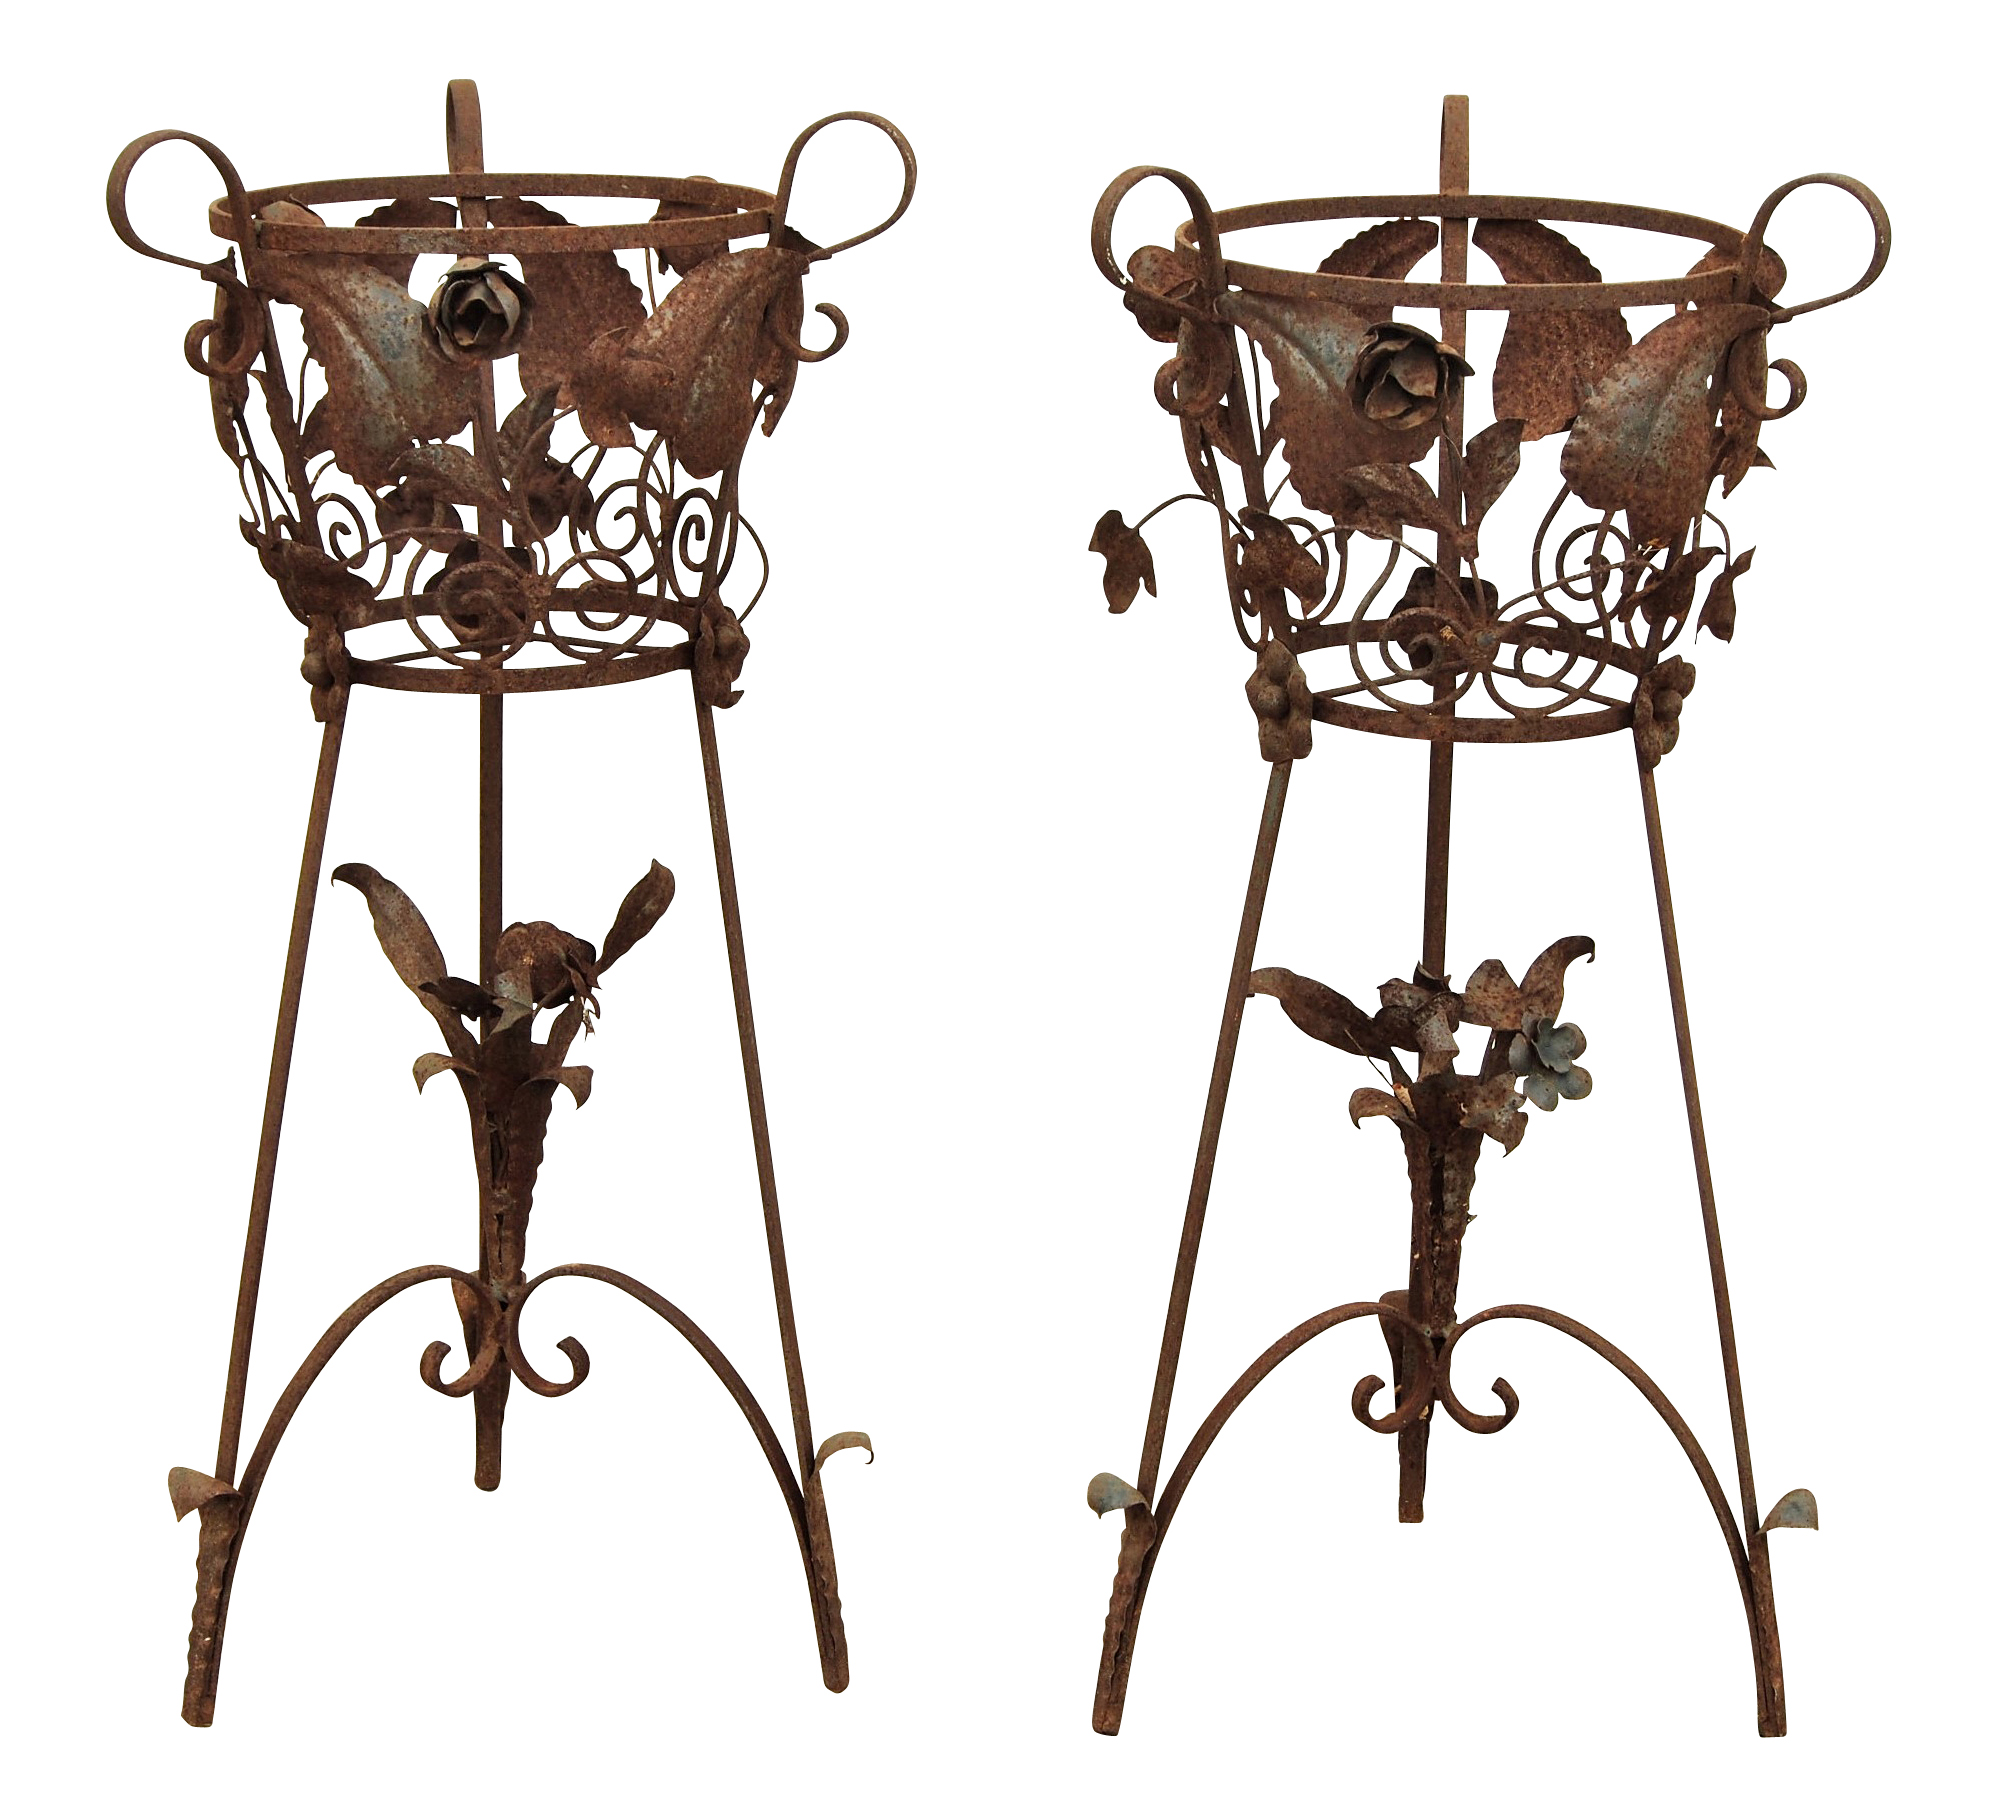 Tall Wrought Iron Plant Stands Pair Vintage Elaborate Iron Plant Stands Black Rock